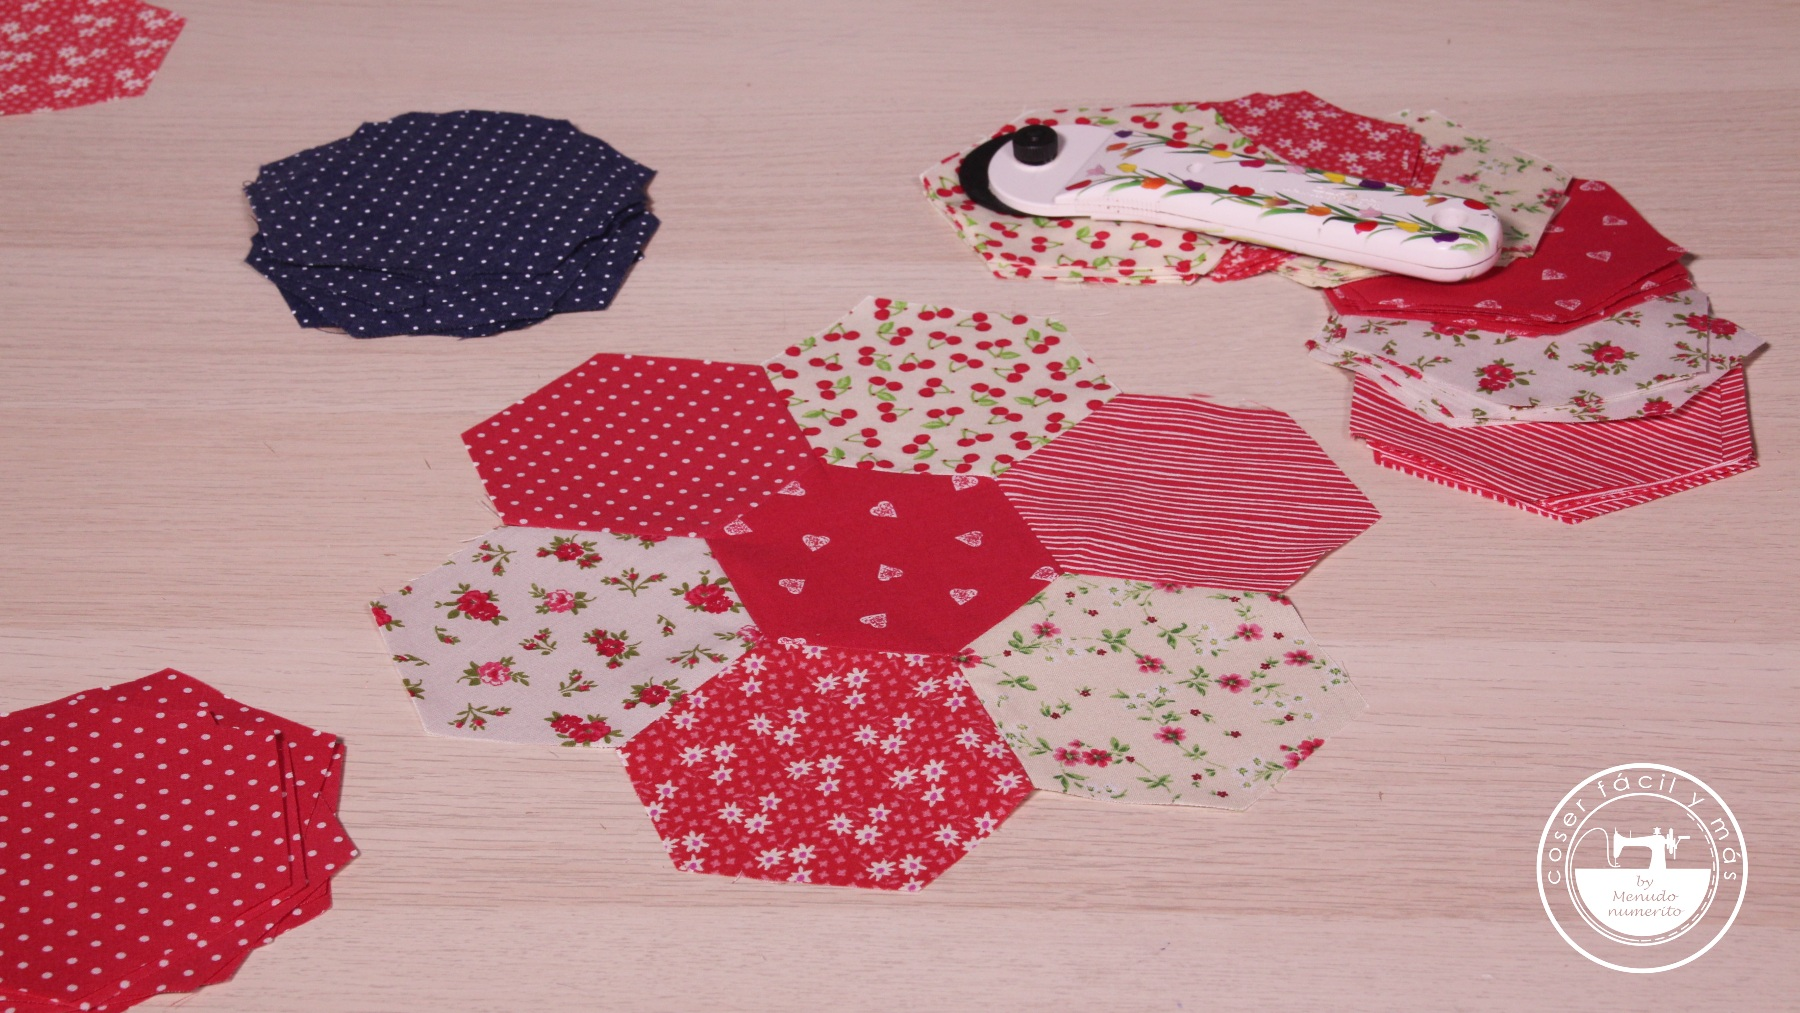 patchwork coser facil blogs de costura menudo numerito